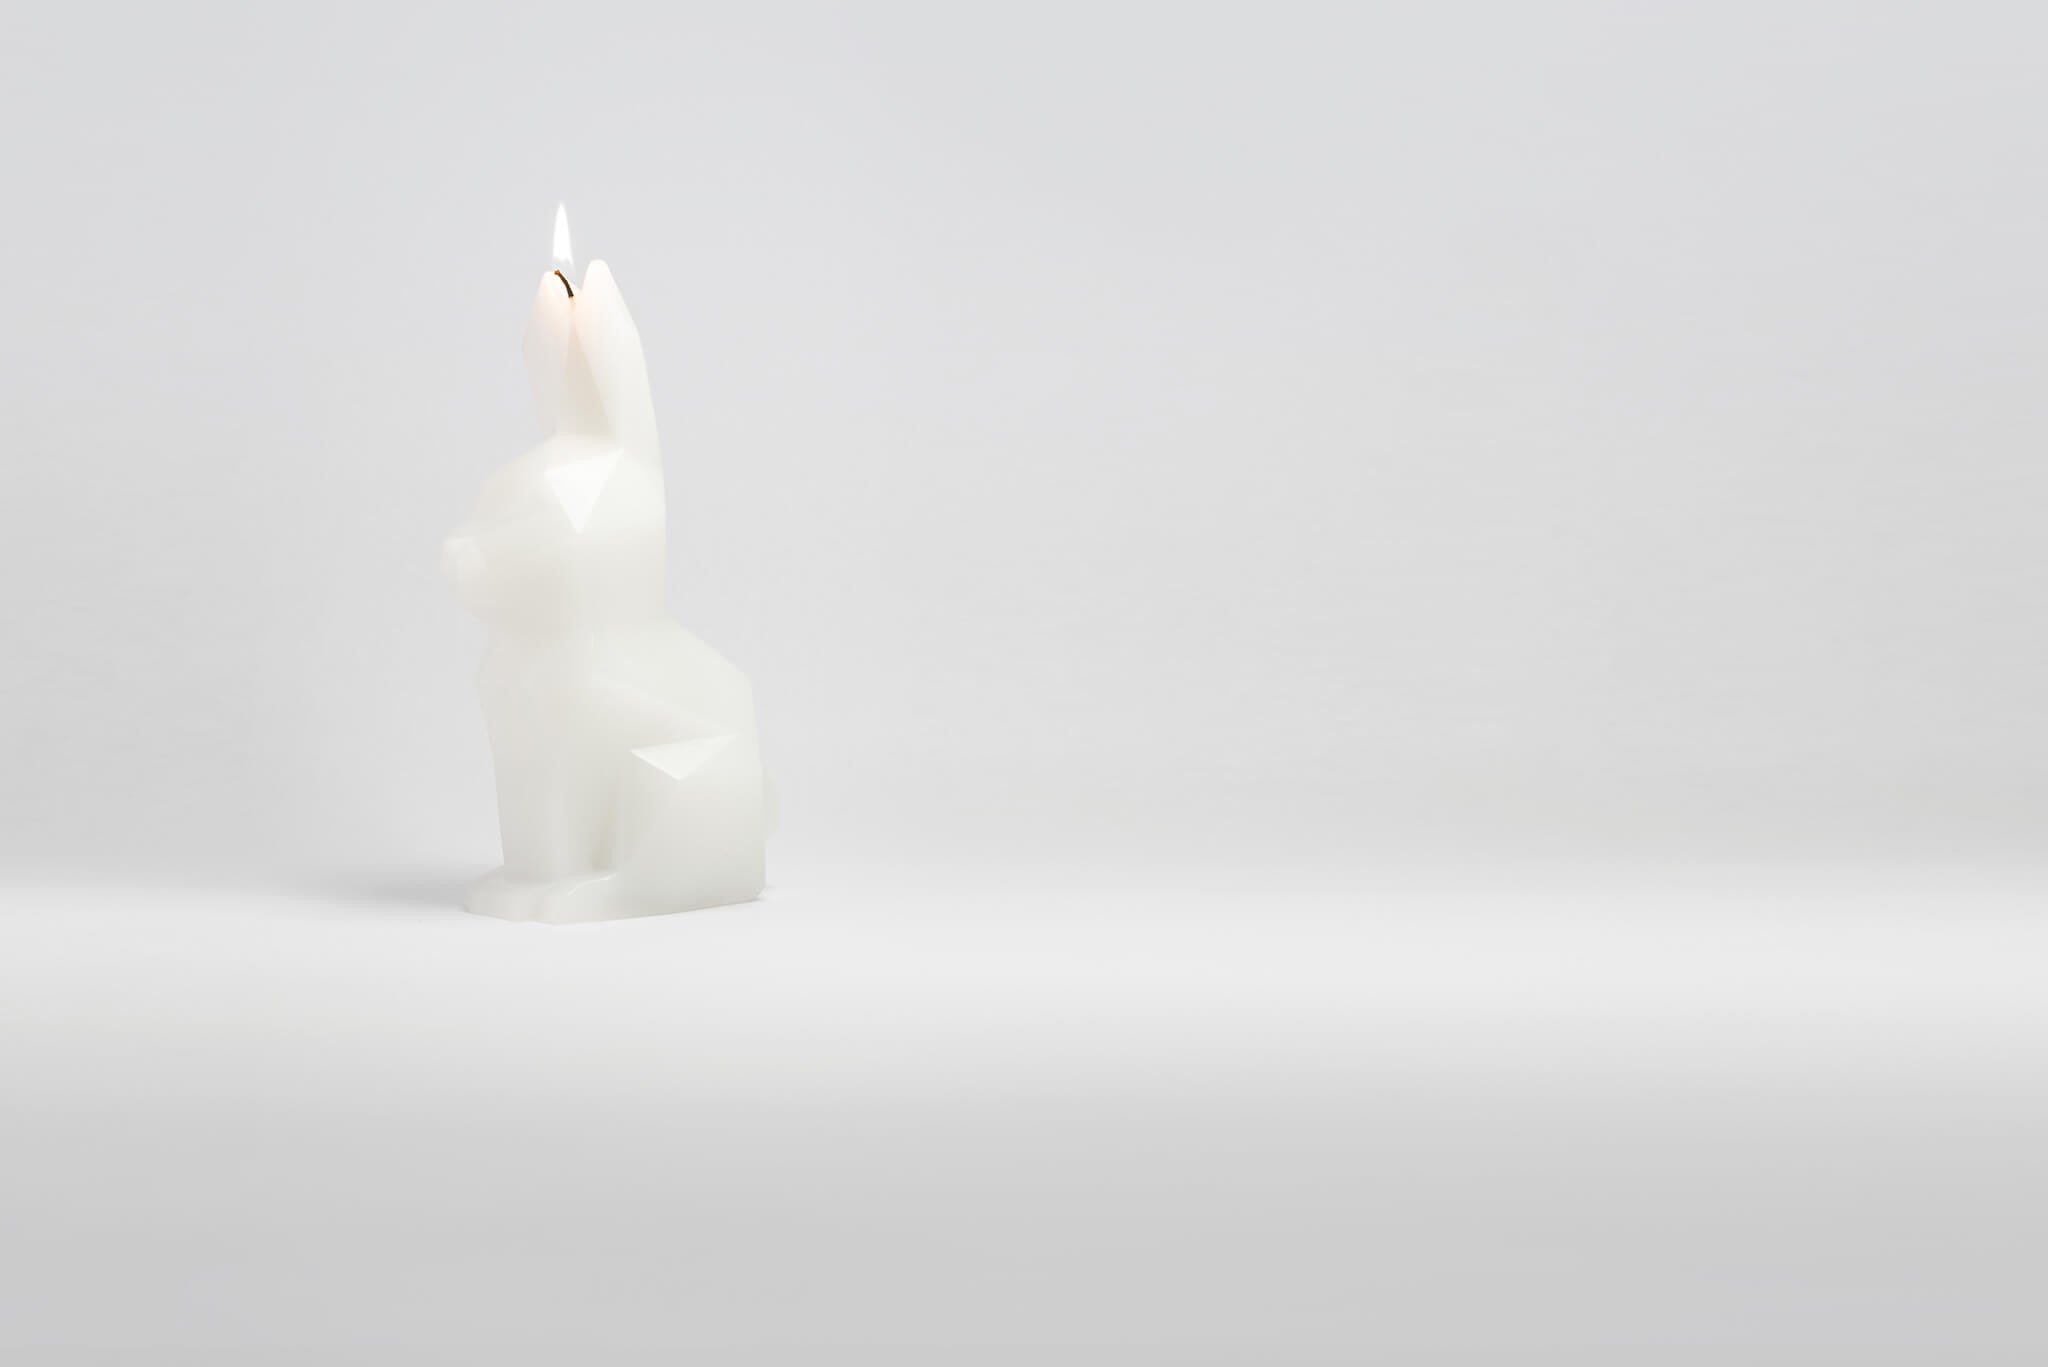 Side view of white hoppa bunny candle. Her wick has just been lit.